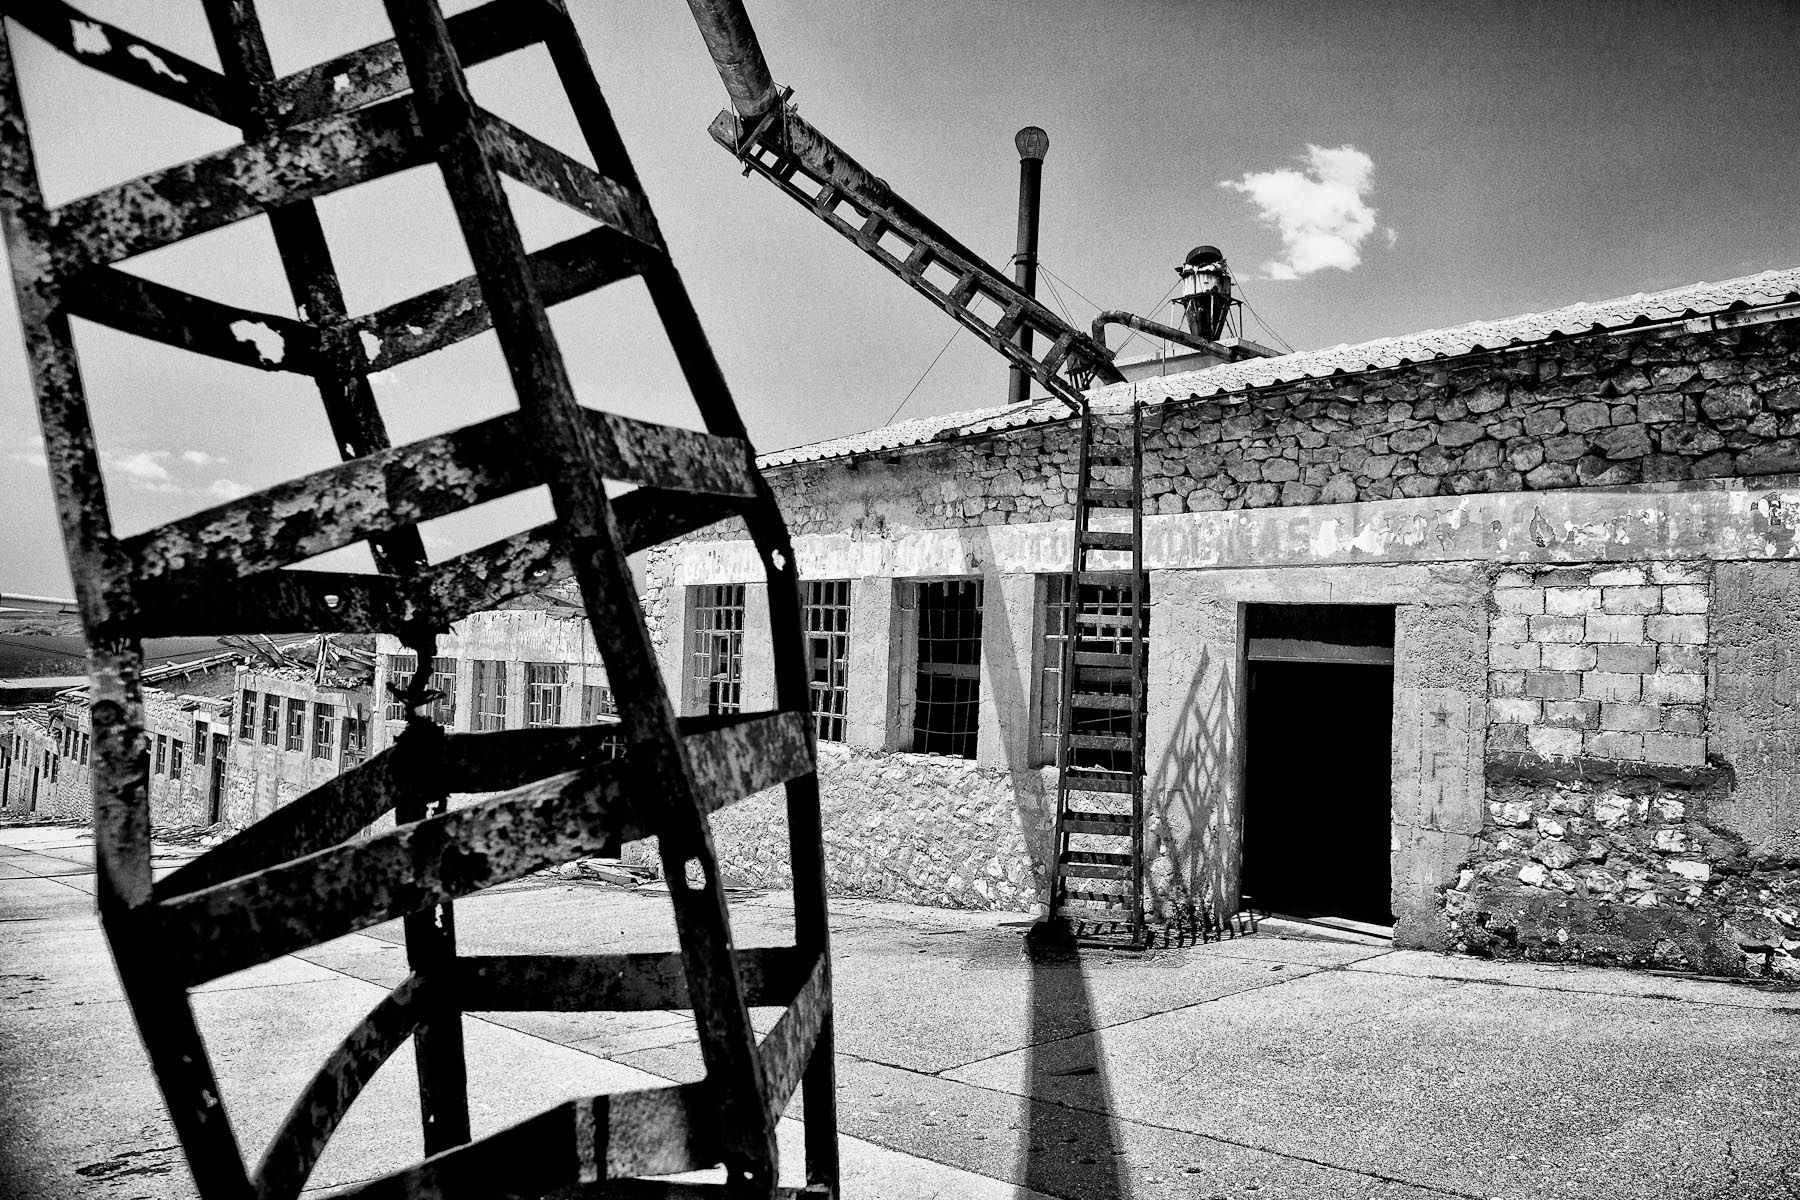 Goli otok island, once a high security, top secret prison for male political prisoners from 1949 to 1956, is now deserted and in ruins.